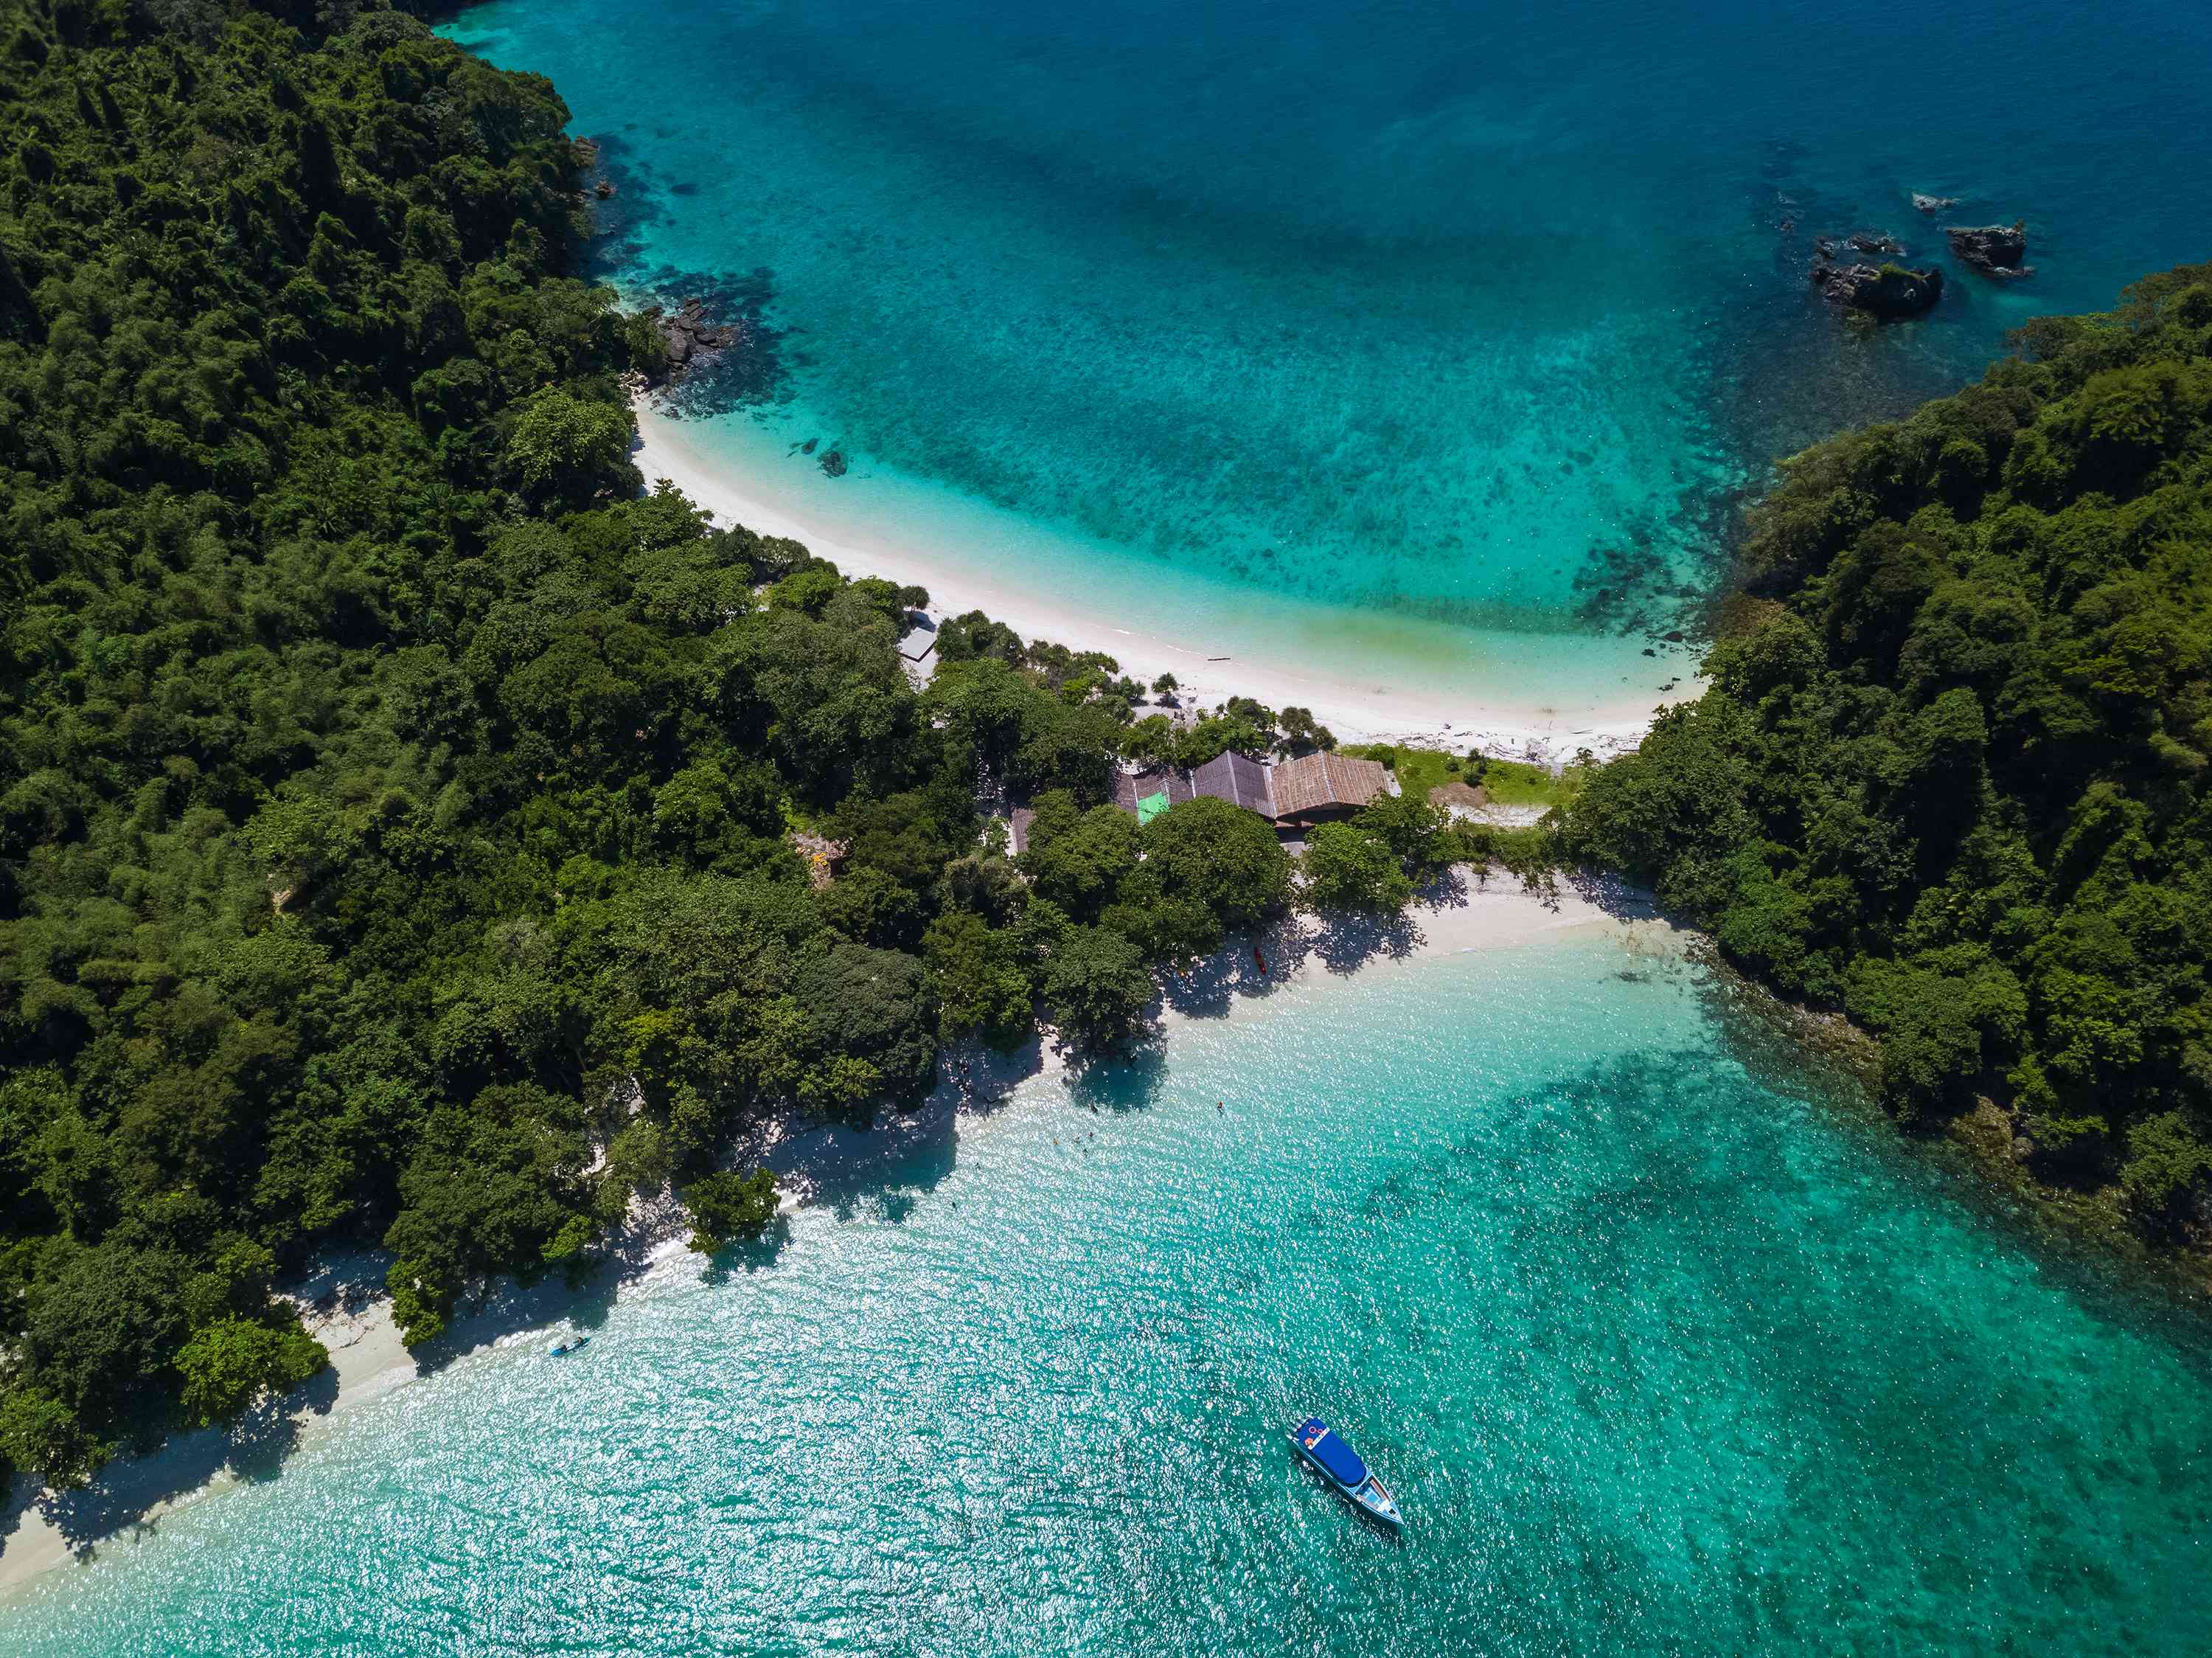 Arial view from above of Twin Beach Mergui Island or Bruer island, seascape landscape view from the sky